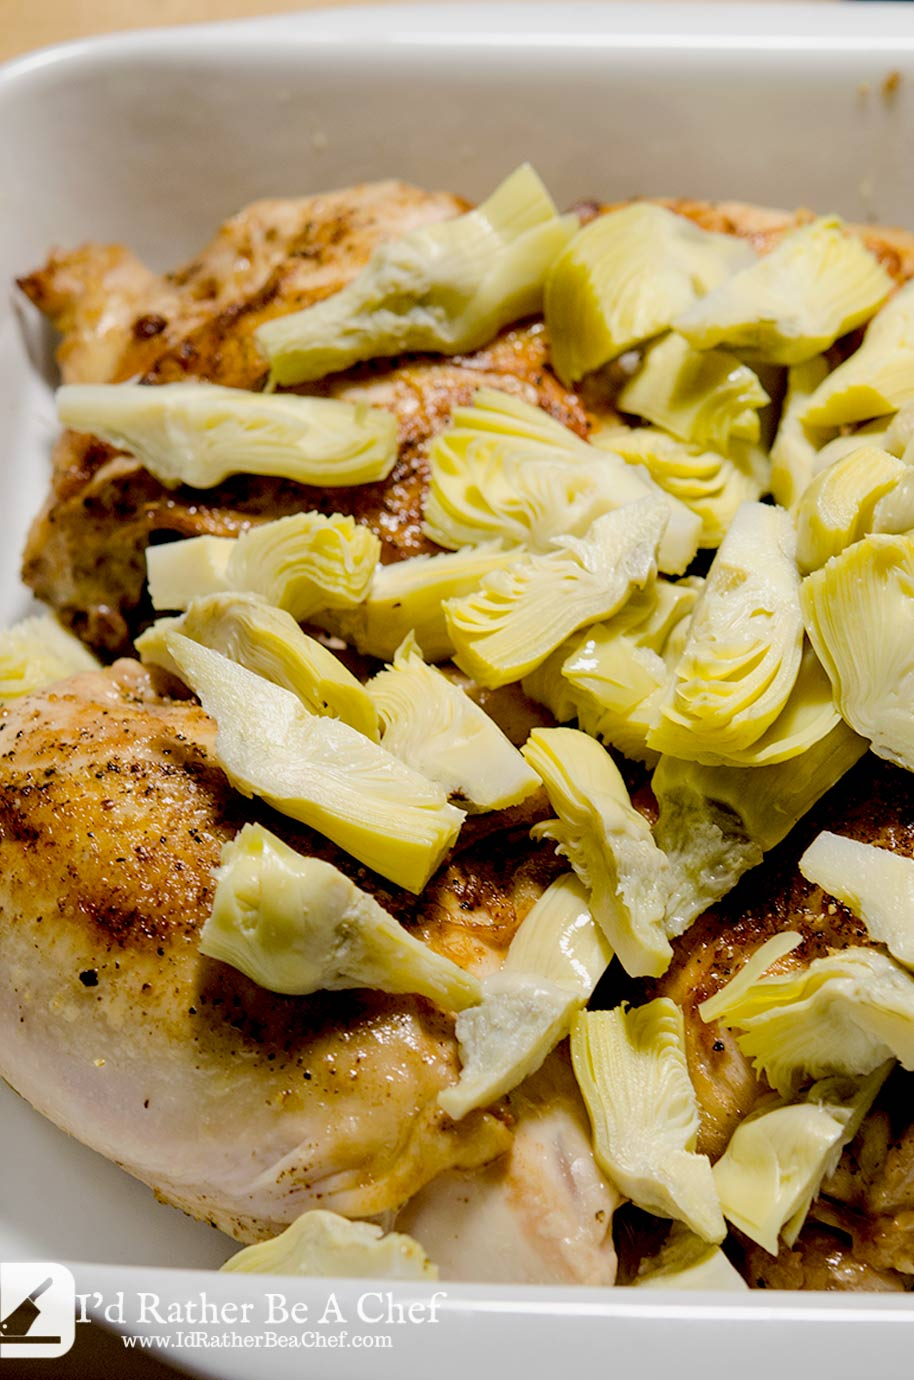 These beautiful quartered artichoke hearts add lightness and zip to this lemon artichoke chicken bake. They just taste so good with the creamy sauce.